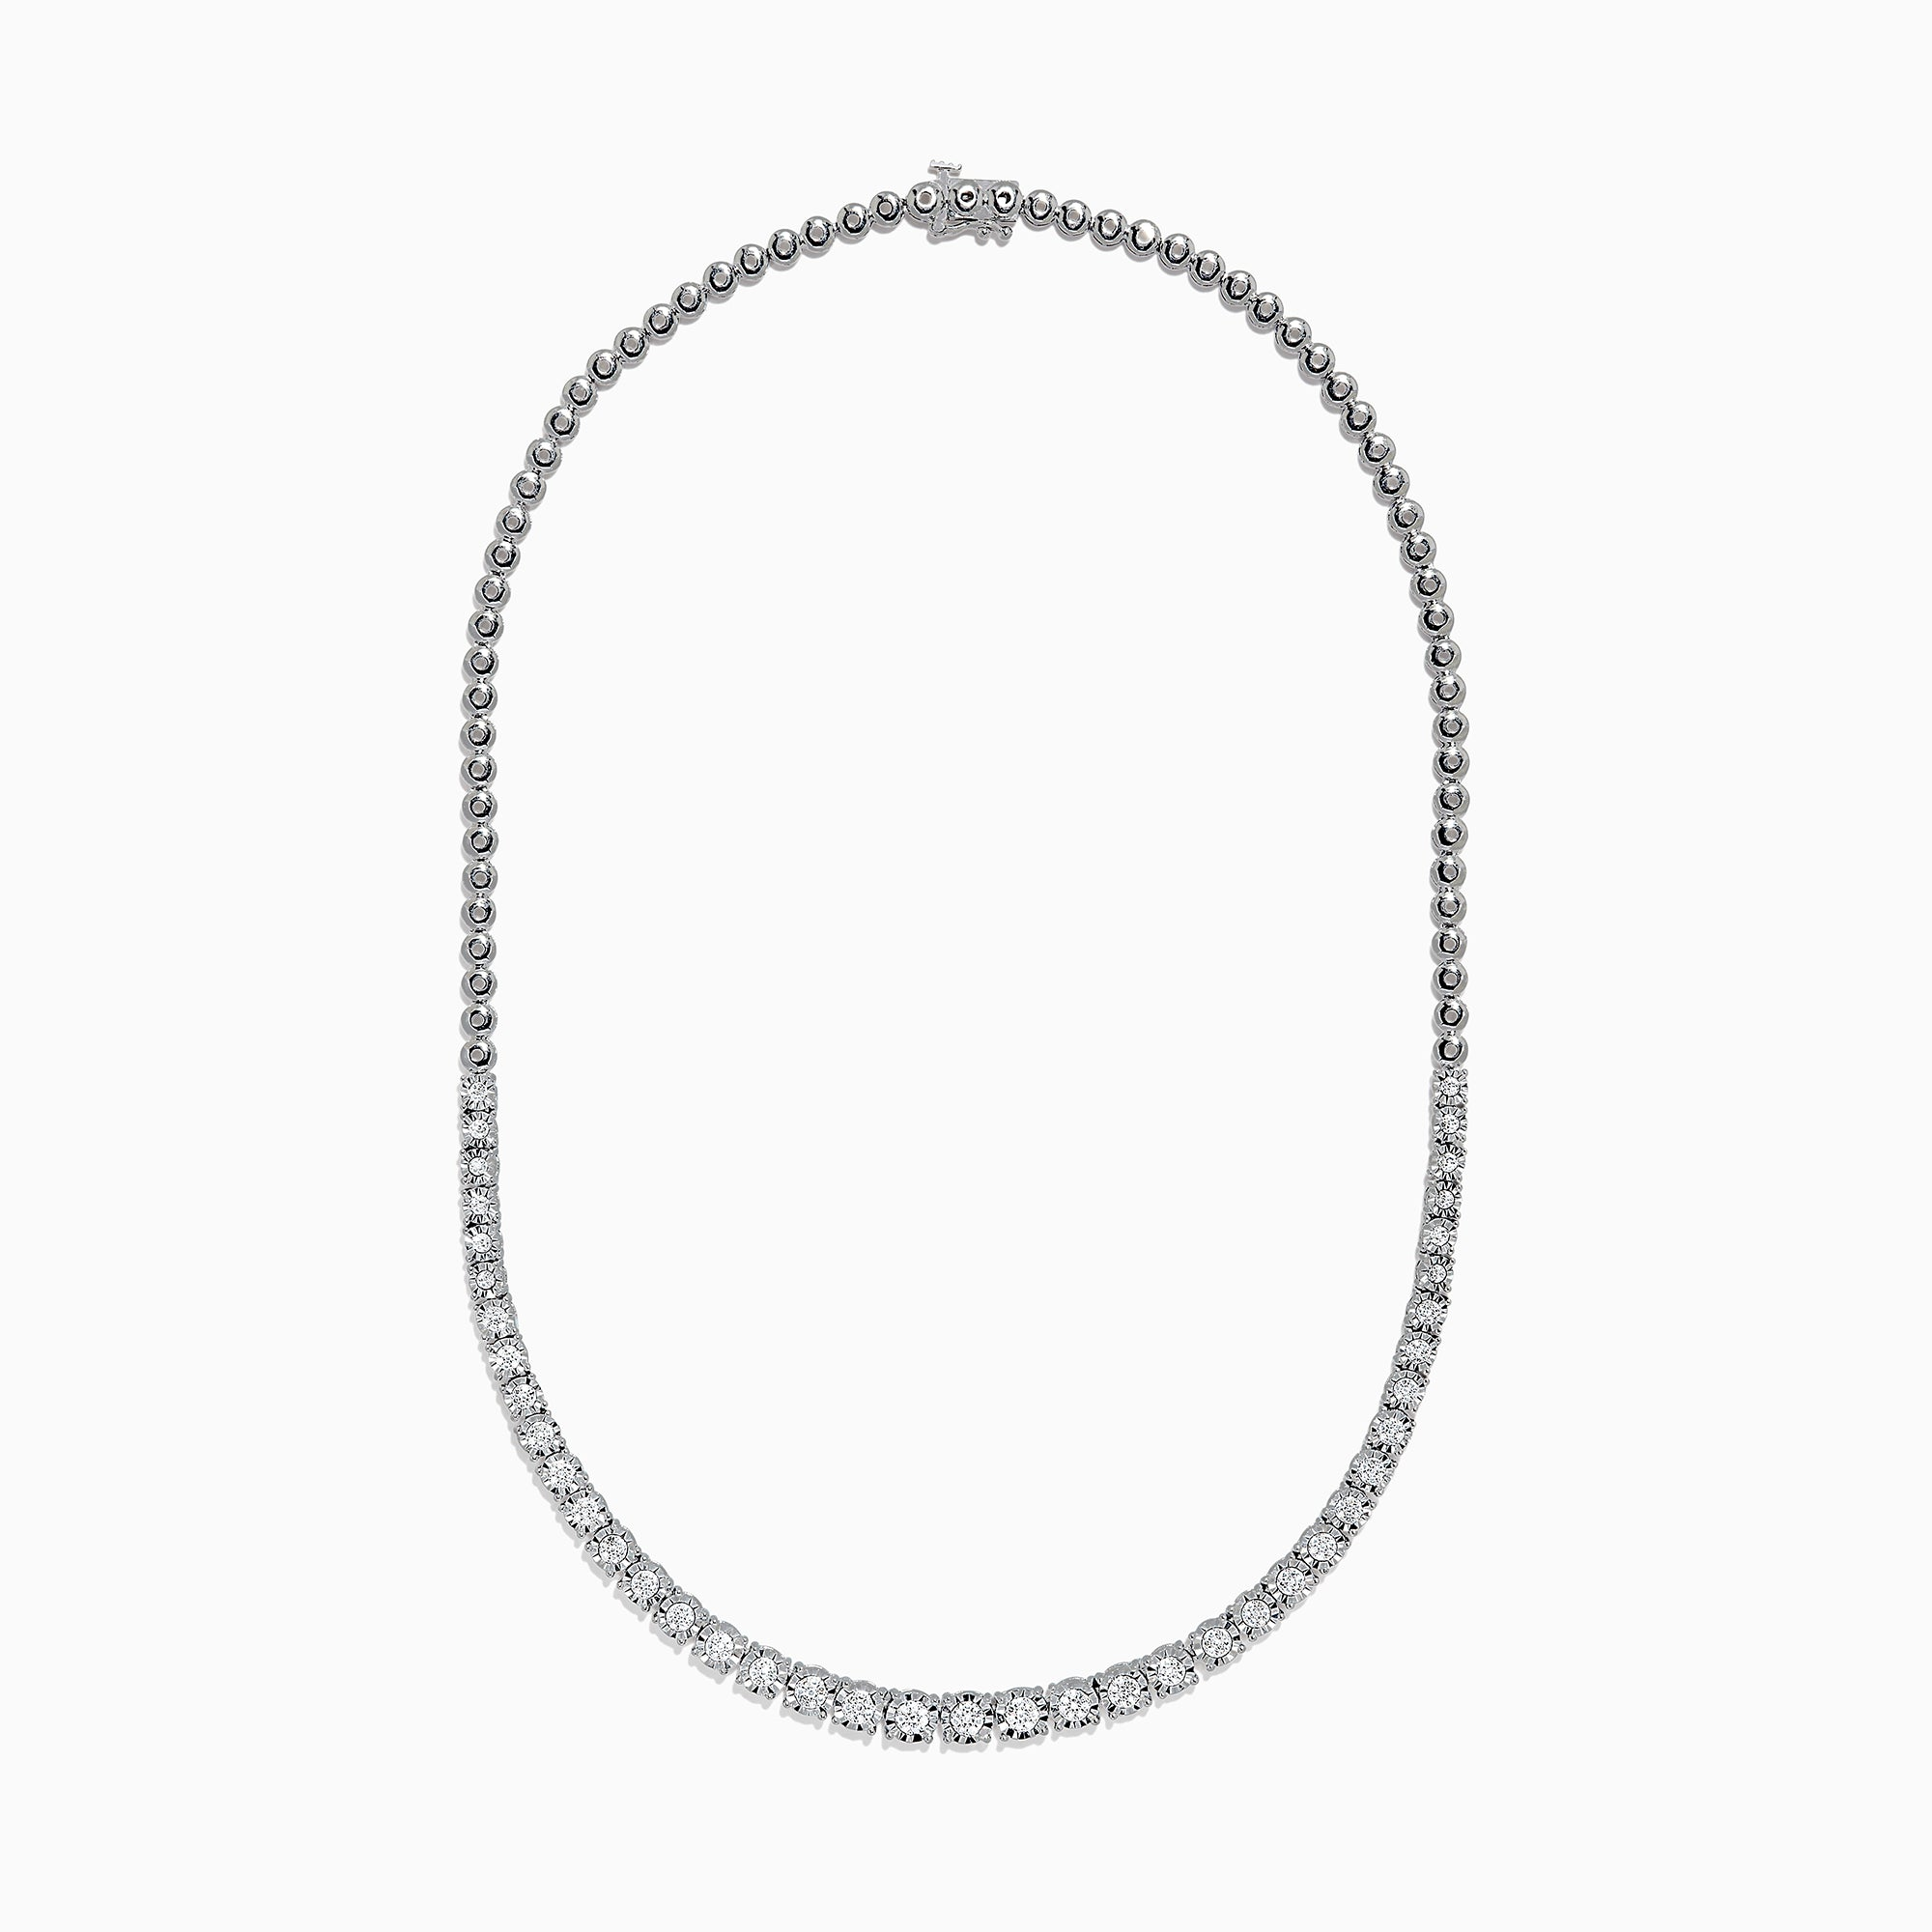 Effy 925 Sterling Silver Diamond Necklace, 0.31 TCW